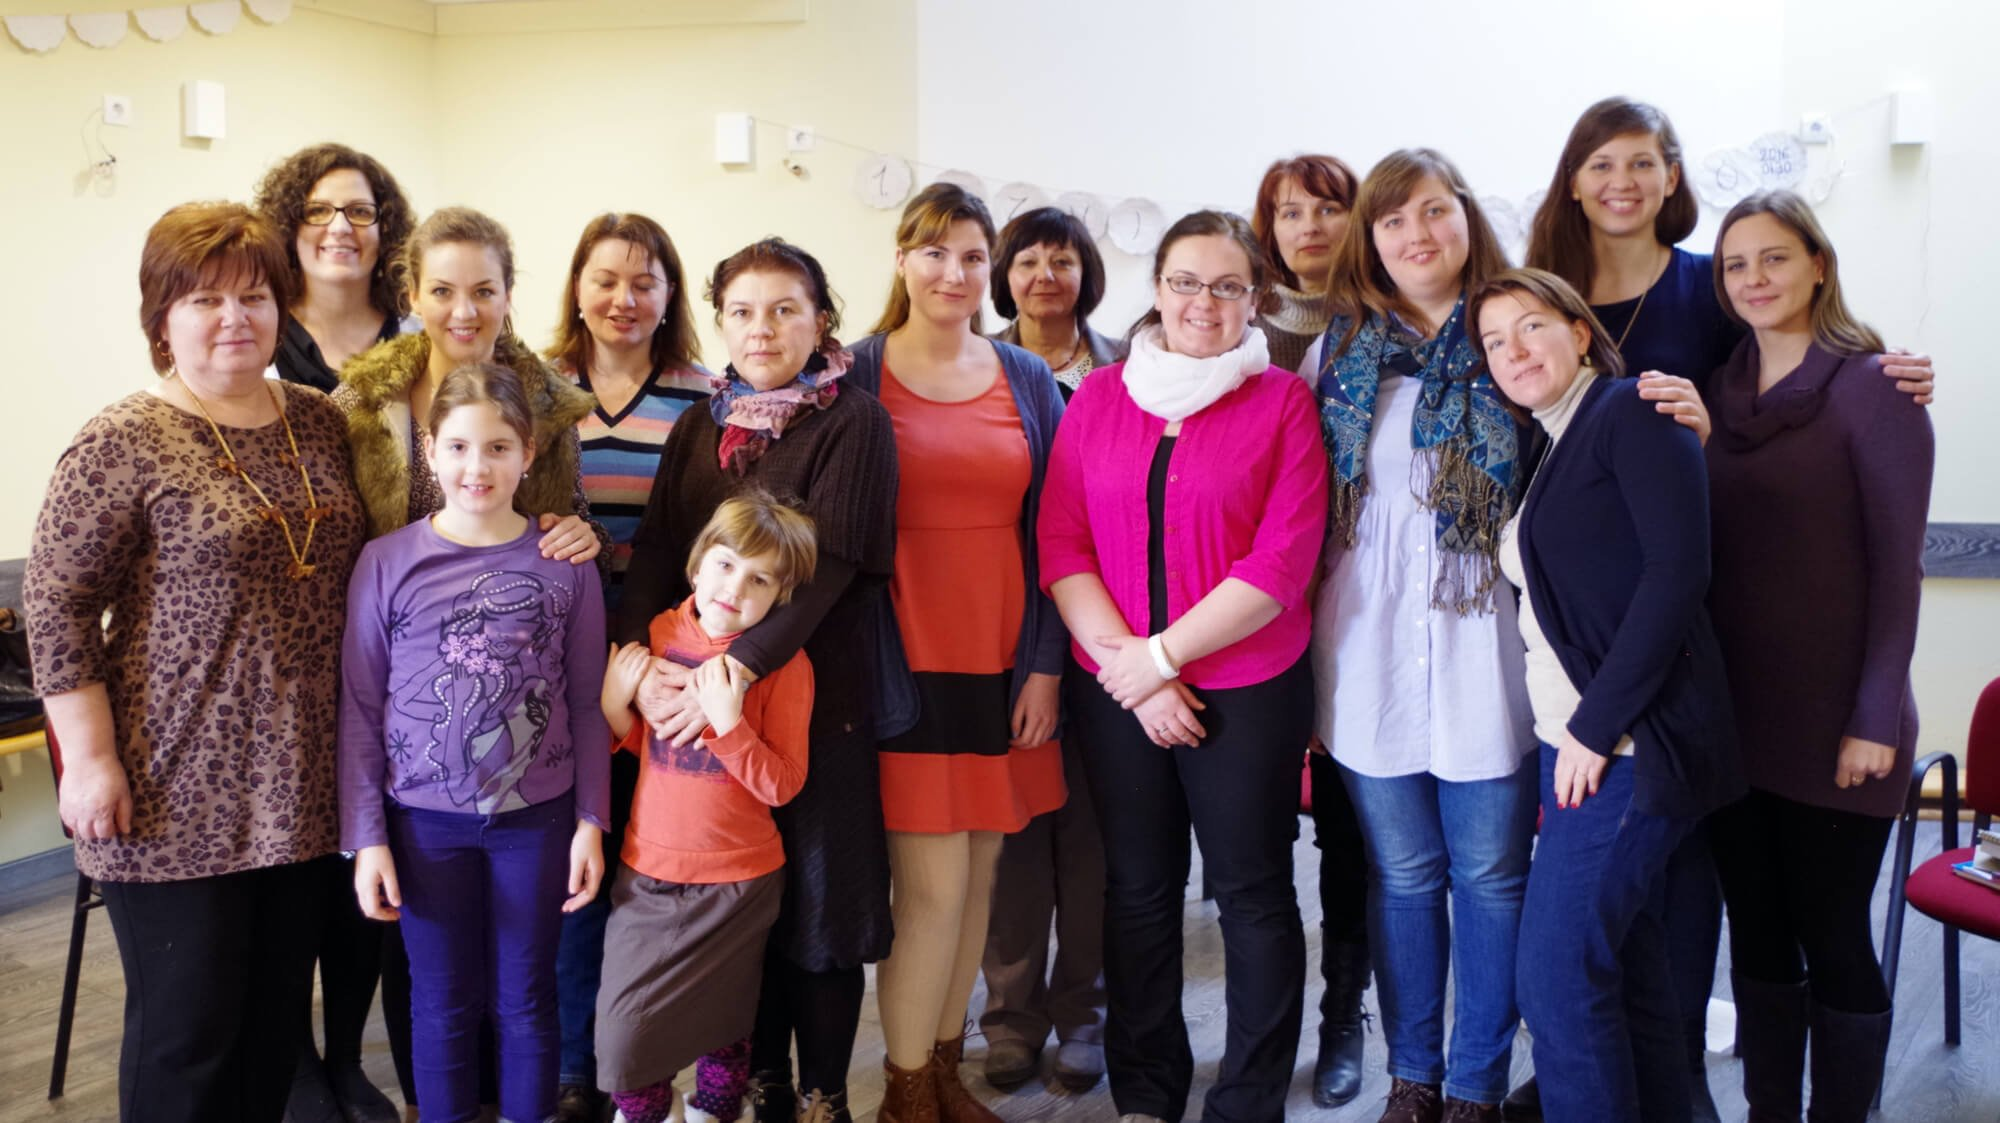 Women gathered together for an Intensive in Hungary held in December.